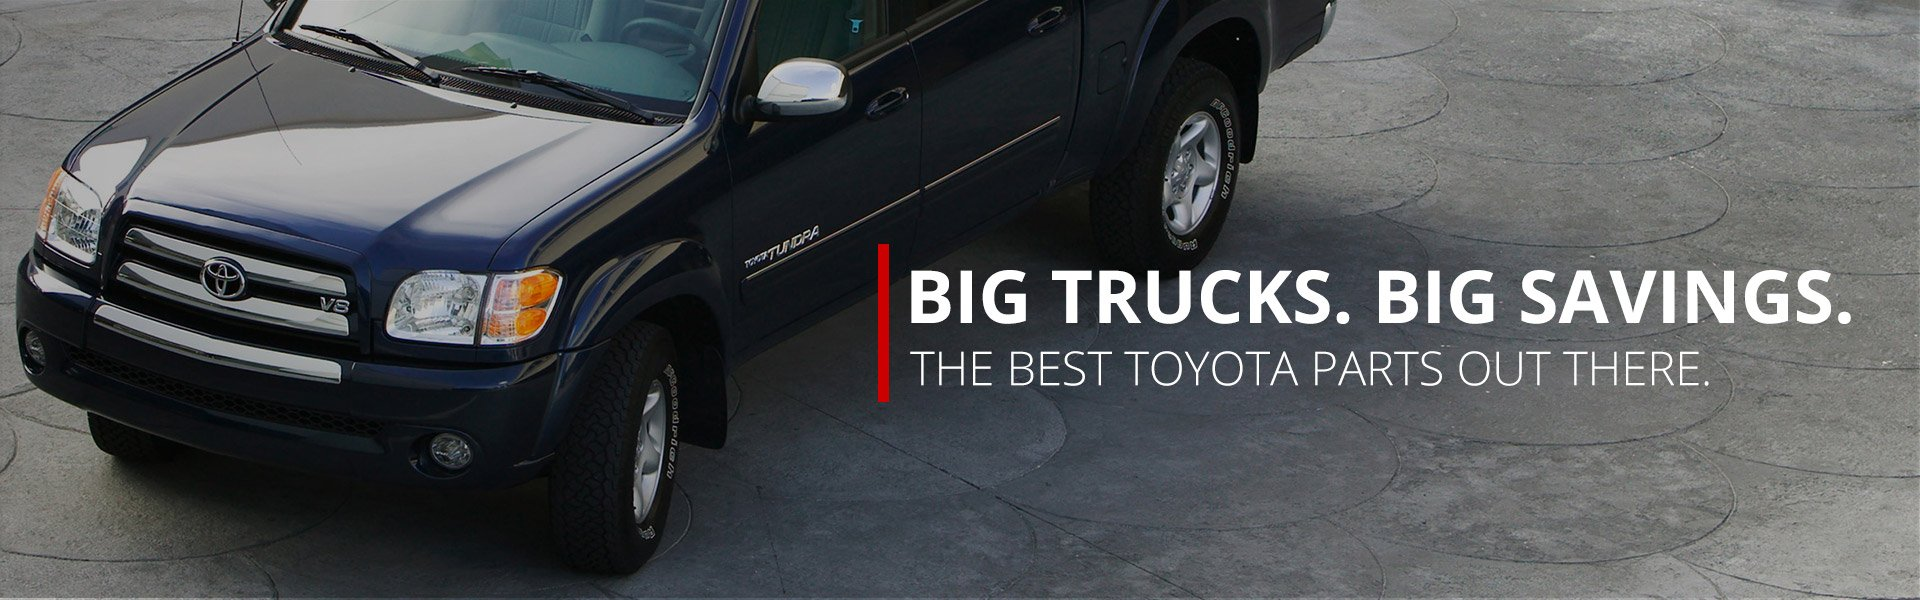 Save big on Toyota parts